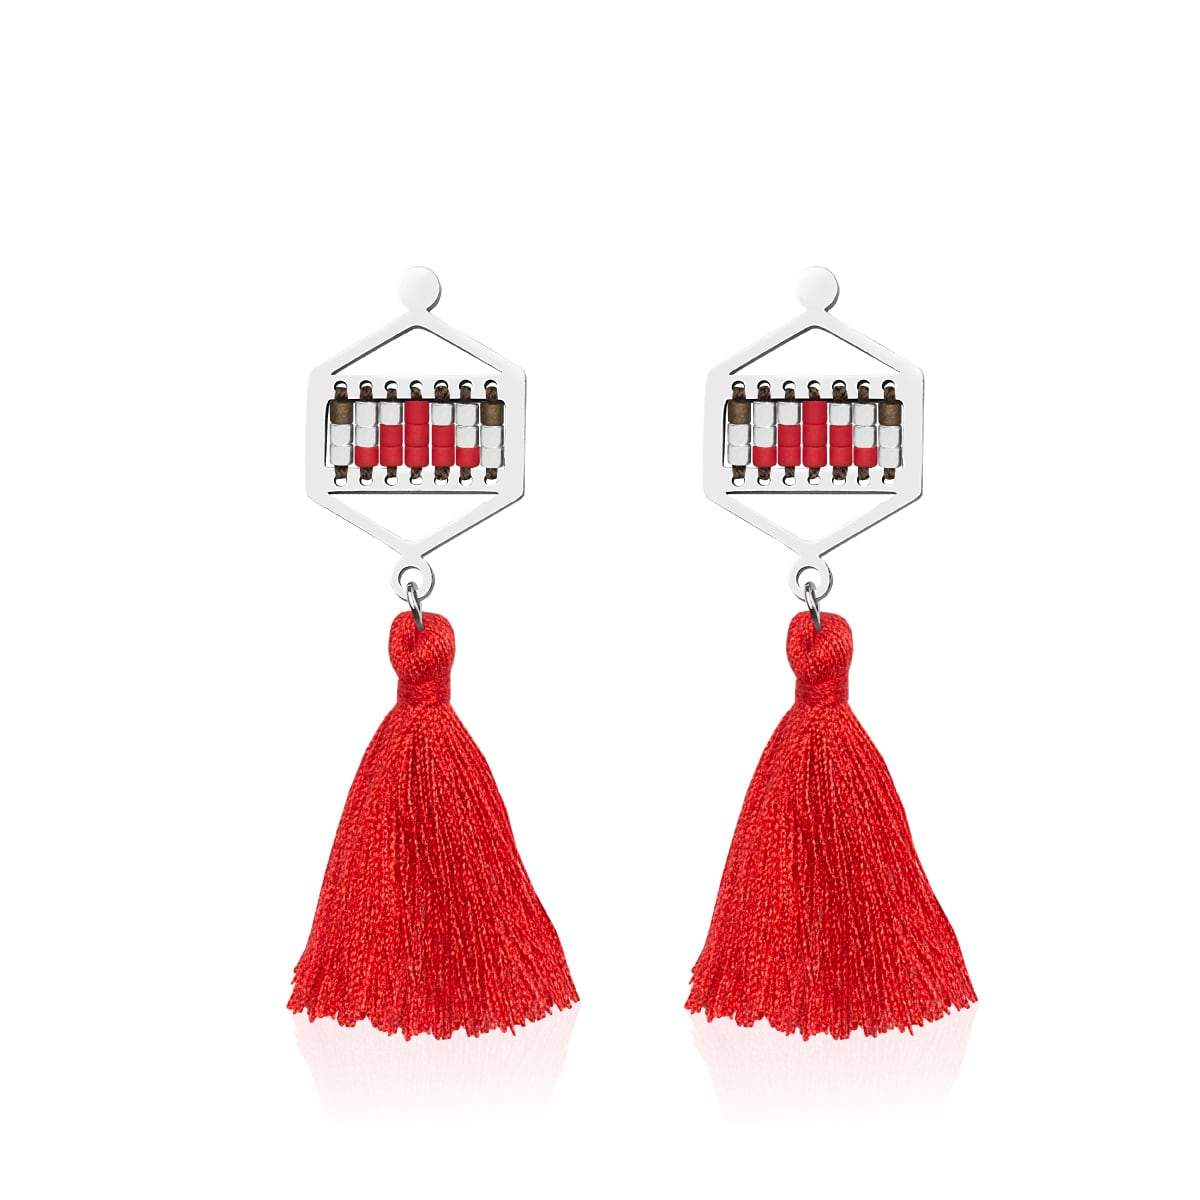 Palo Alto | Silver | Boho Fringe Earrings